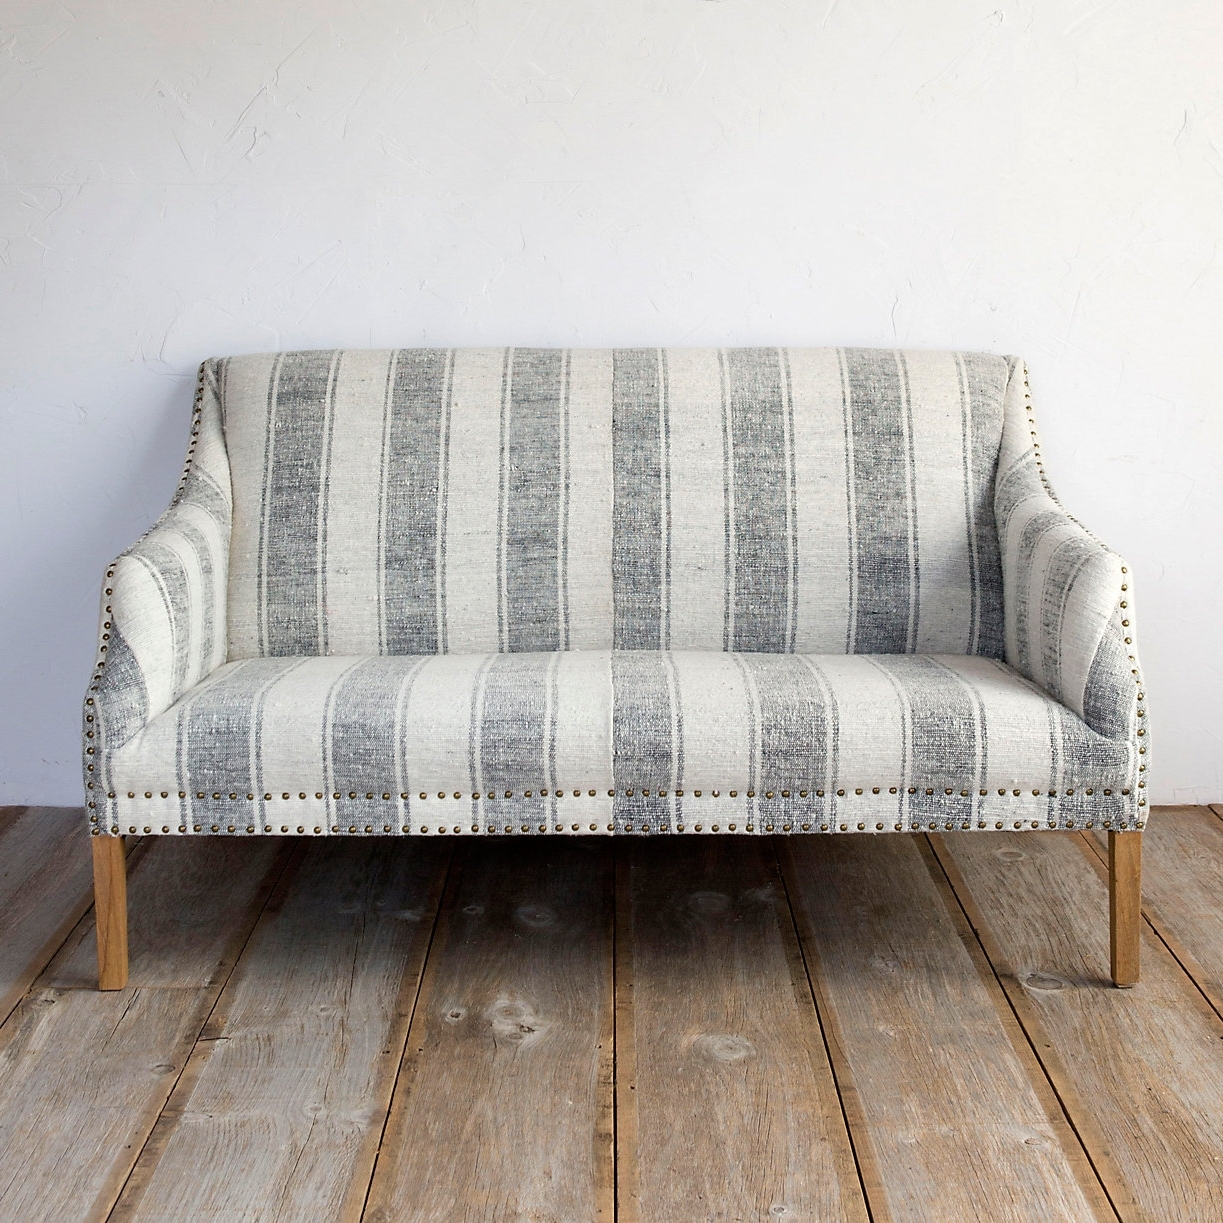 Shabby Chic Decor For Sale Shabby Chic Used Furniture Shabby Chic For Popular Shabby Chic Sofas (View 6 of 15)